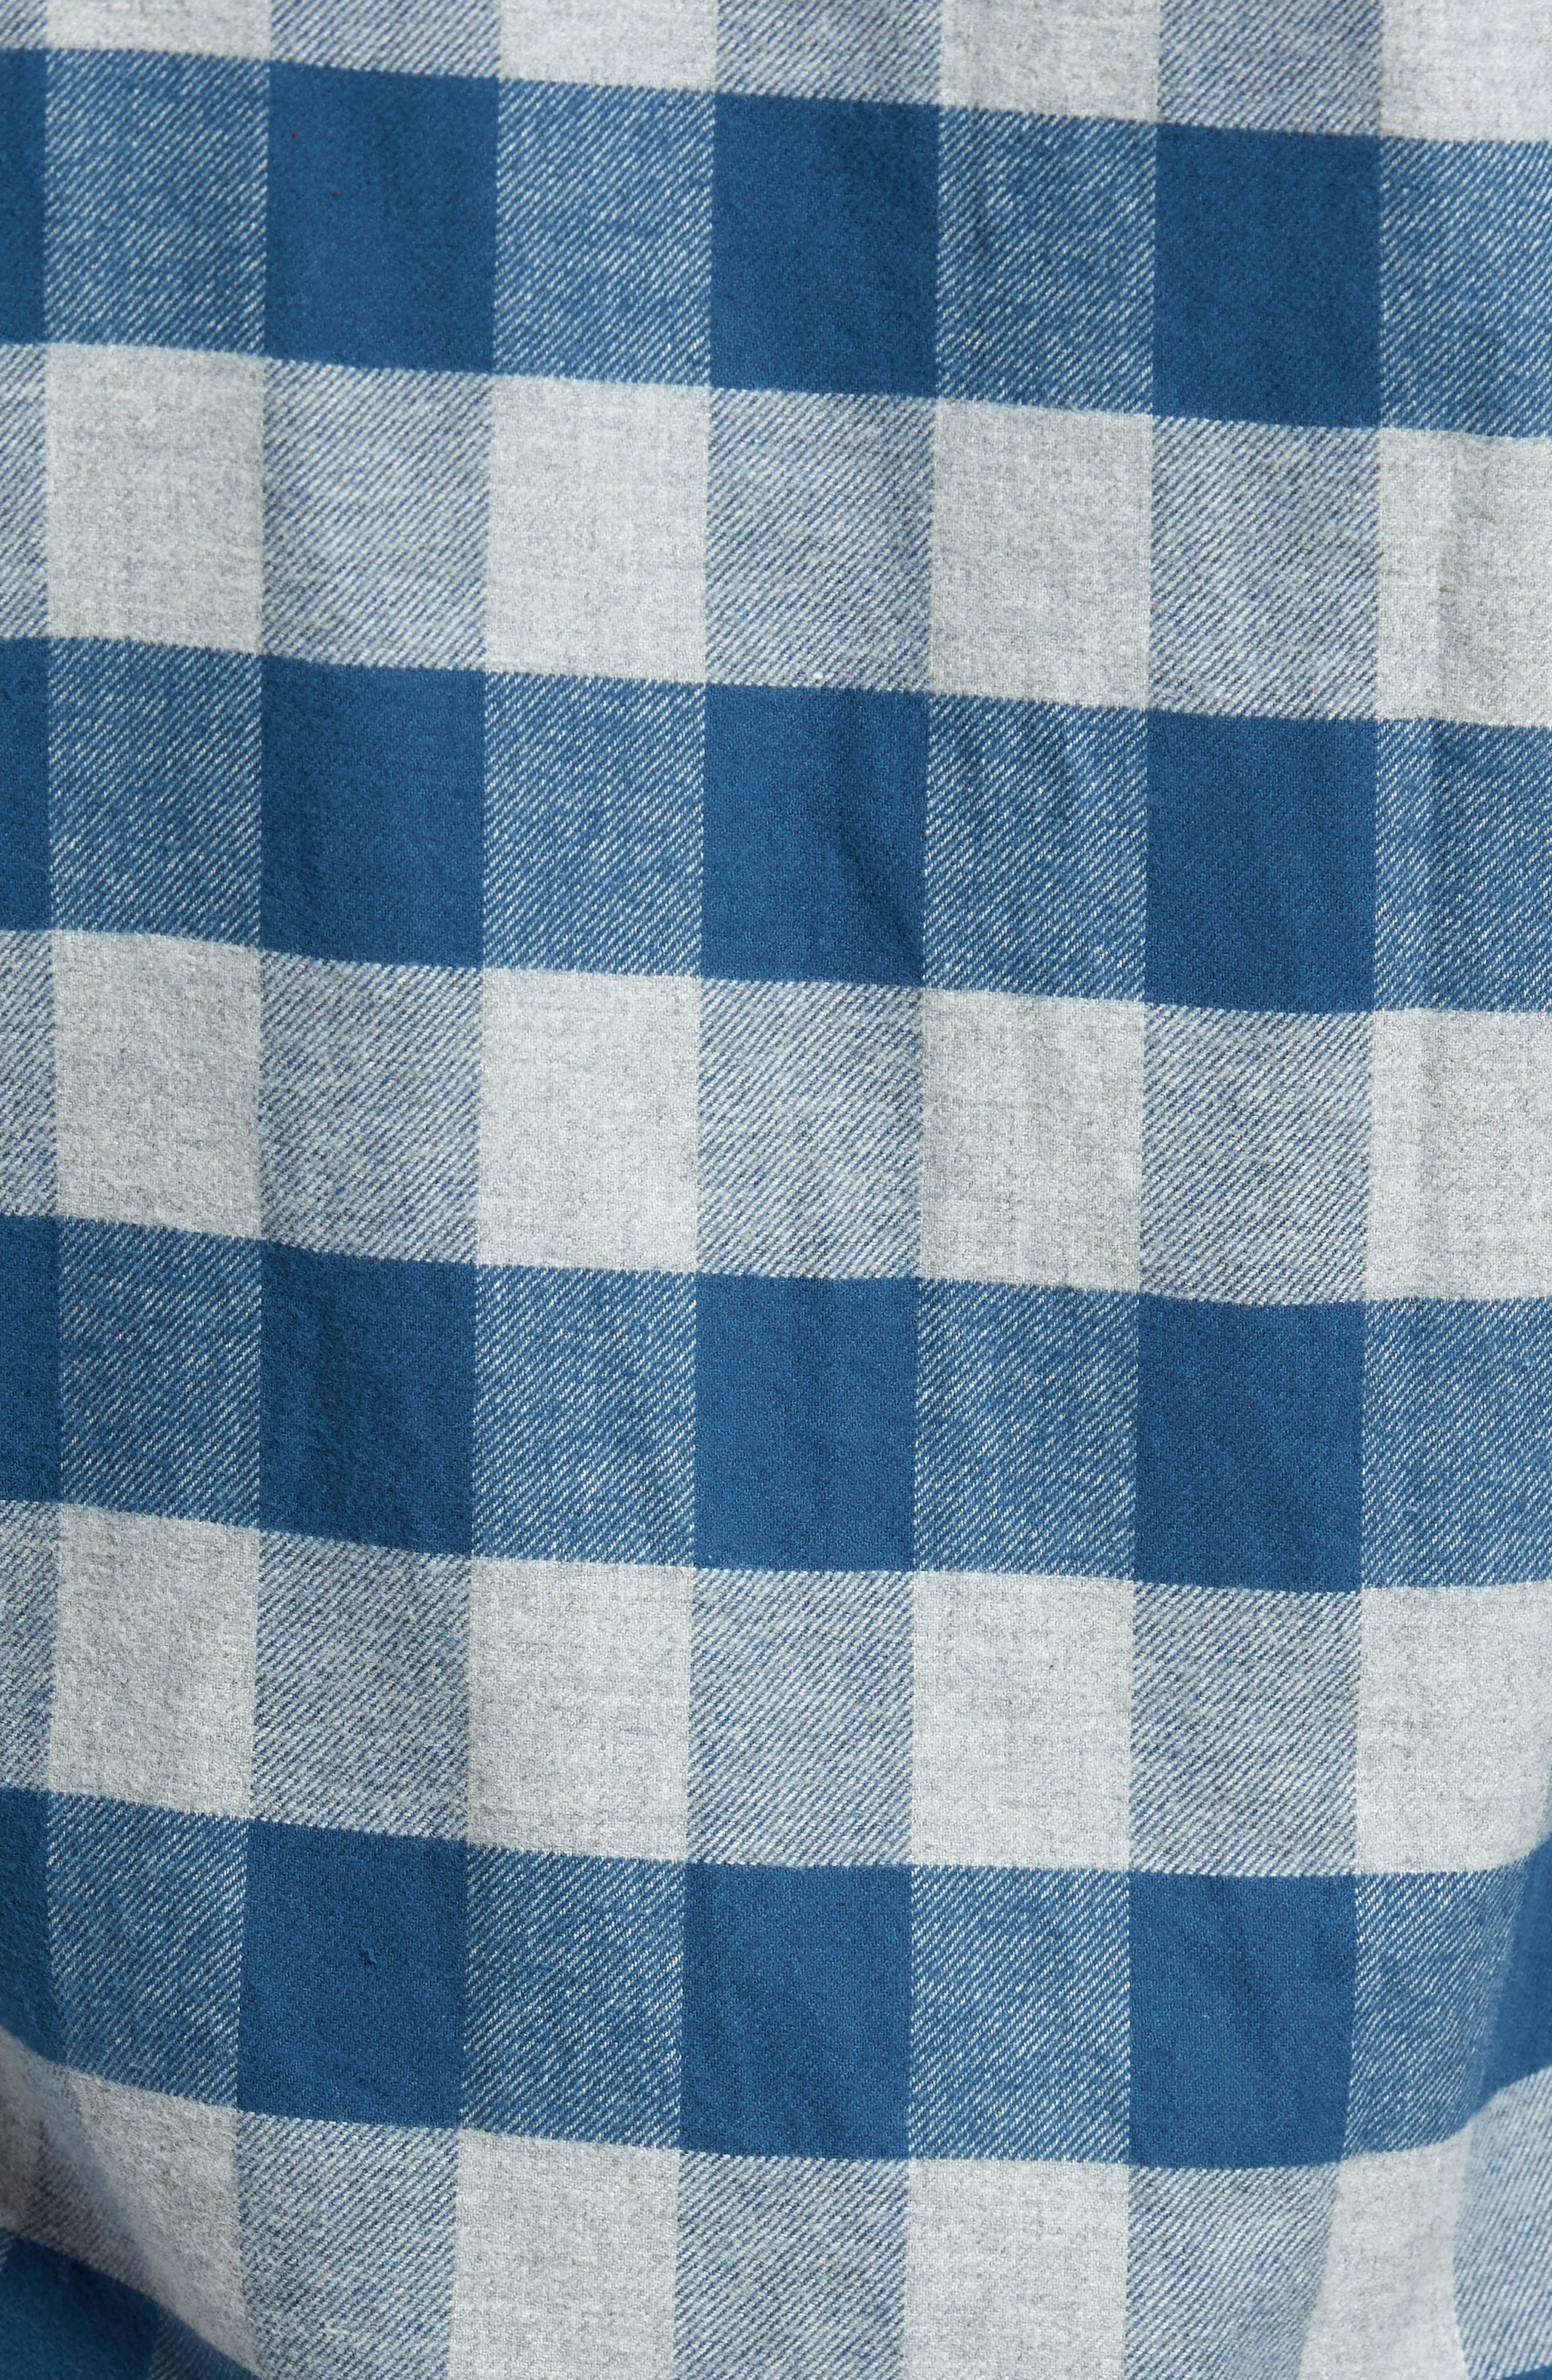 Buffalo Check Flannel Shirt,                             Alternate thumbnail 5, color,                             Teal/ Med Grey Heather